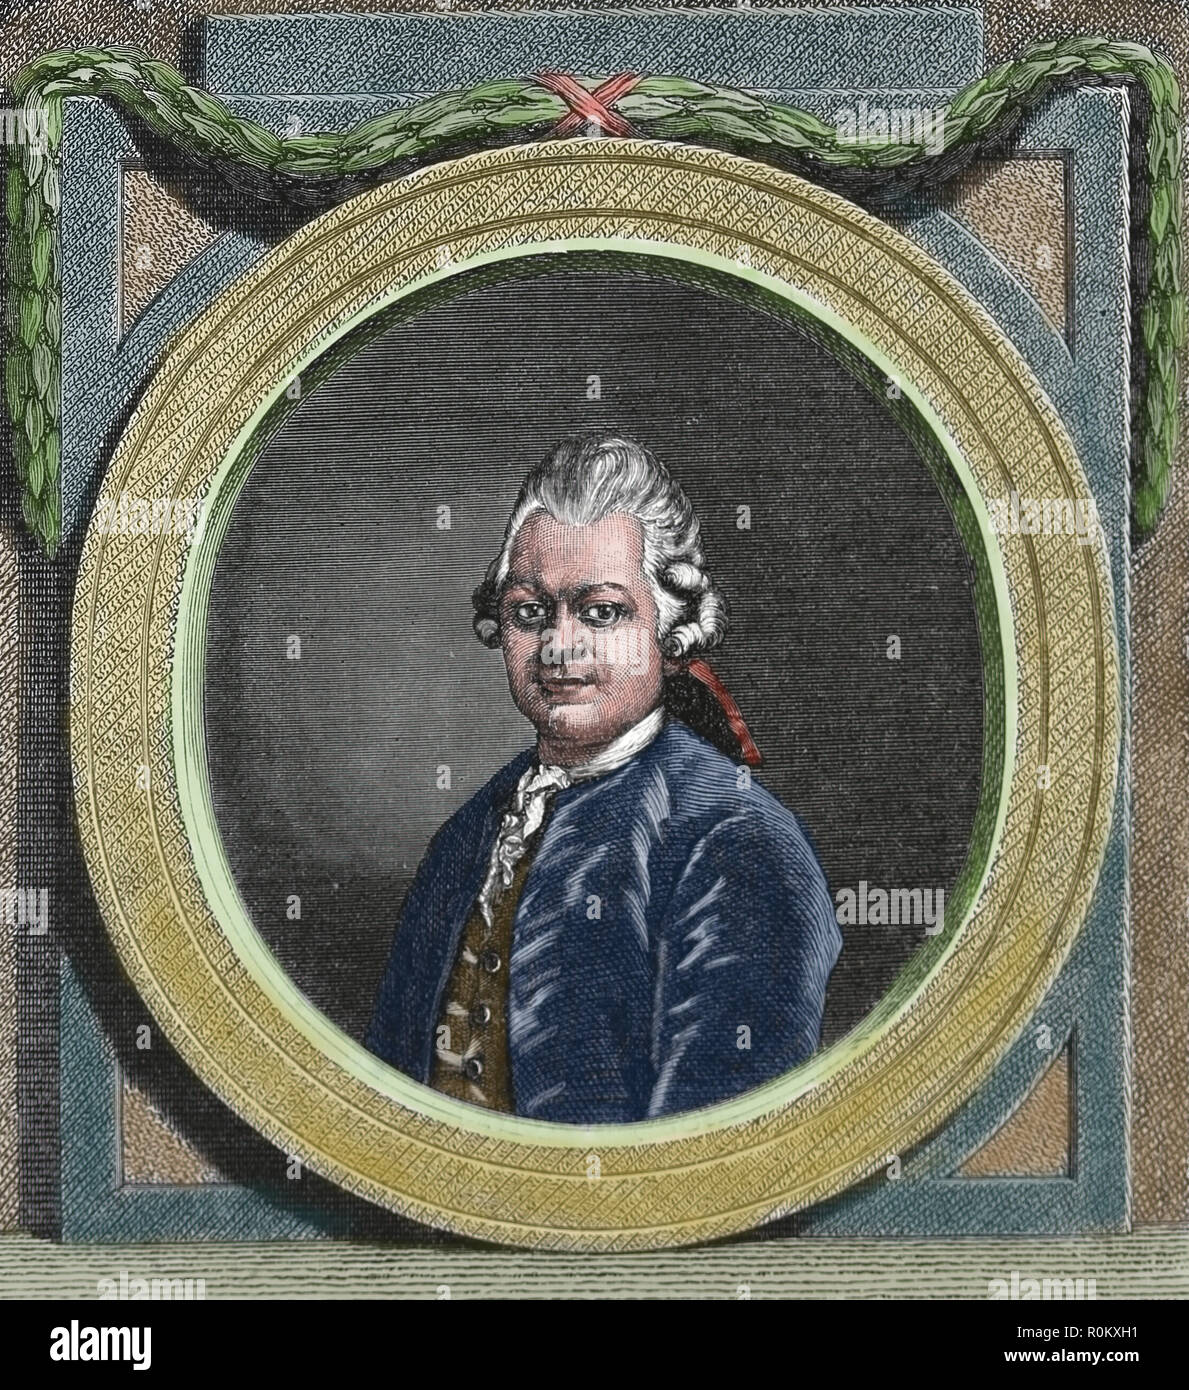 Gotthold Ephraim Lessing (1729-1781). German writer and drramatist. Enlightenment era. Engraving of Germania, 1882. Stock Photo